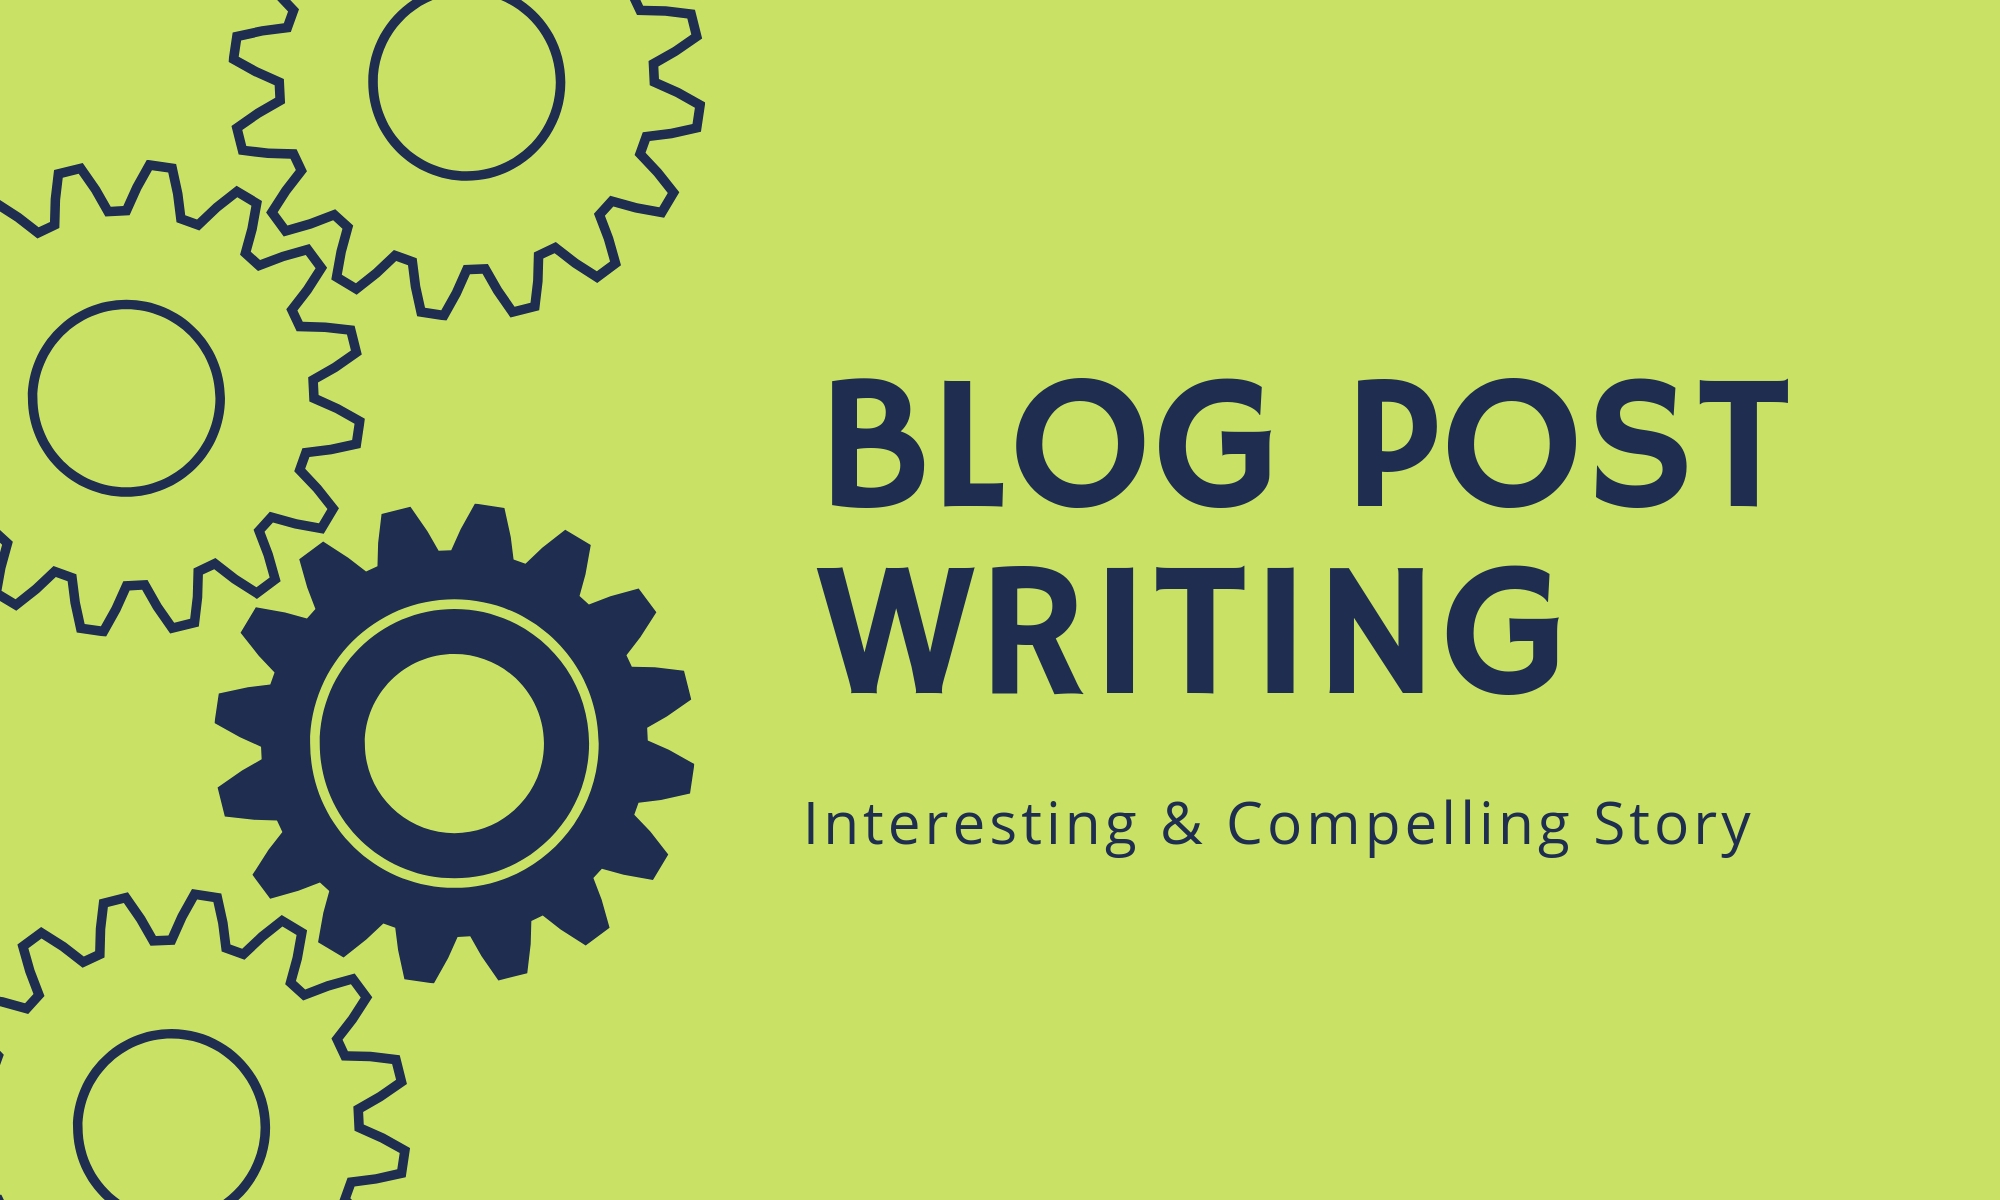 Blog Post Writing Service